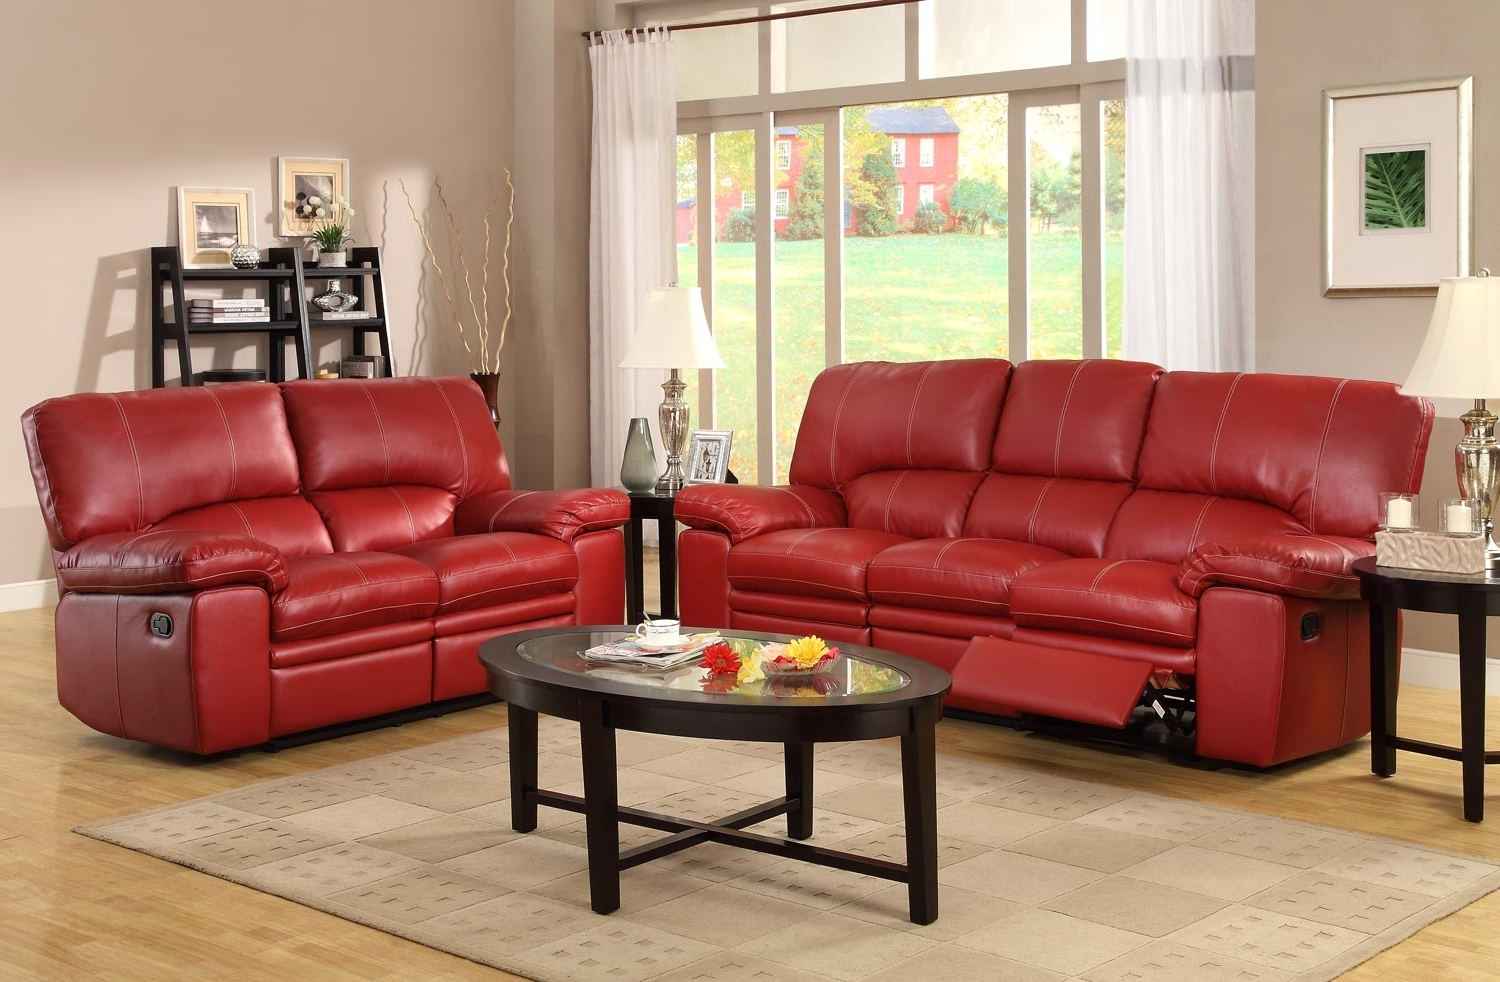 Red Leather Couches And Loveseats Within Best And Newest Simple Red Leather Tufted Backrest Loveseat With Shelter Armrest (View 12 of 15)